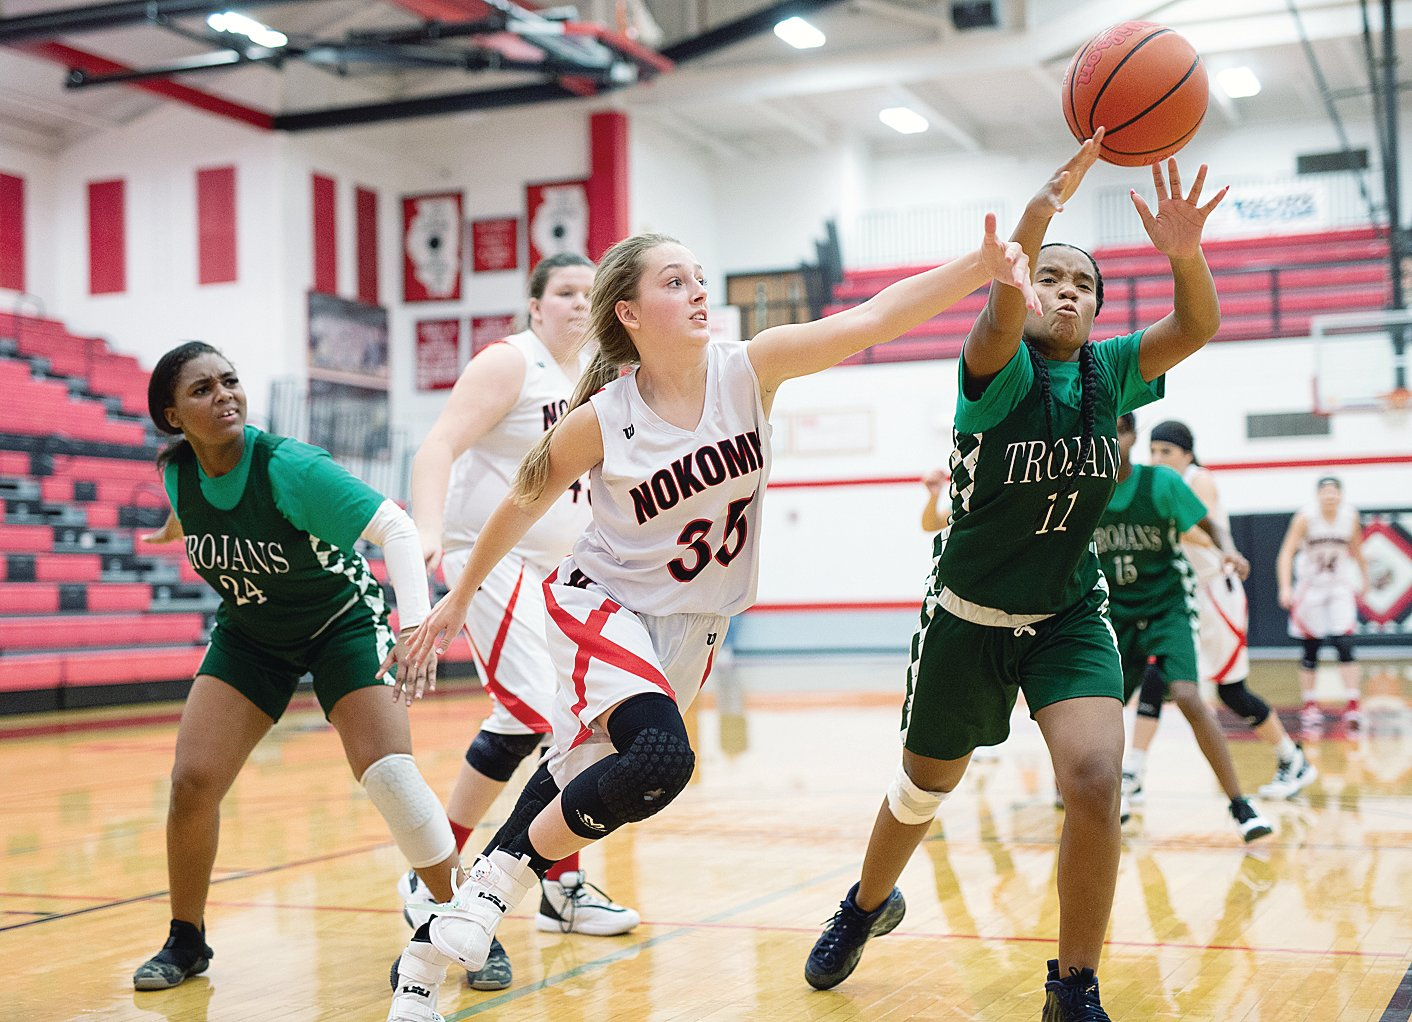 Nokomis' Emily Cress lunges for a loose ball during the Lady Redskins' 64-14 win over Madison on Thursday, Dec. 5. The Redskins followed that win with another against Metro-East Lutheran on Dec. 9,by a 37-35 final score, to improve to 4-5 on the season.